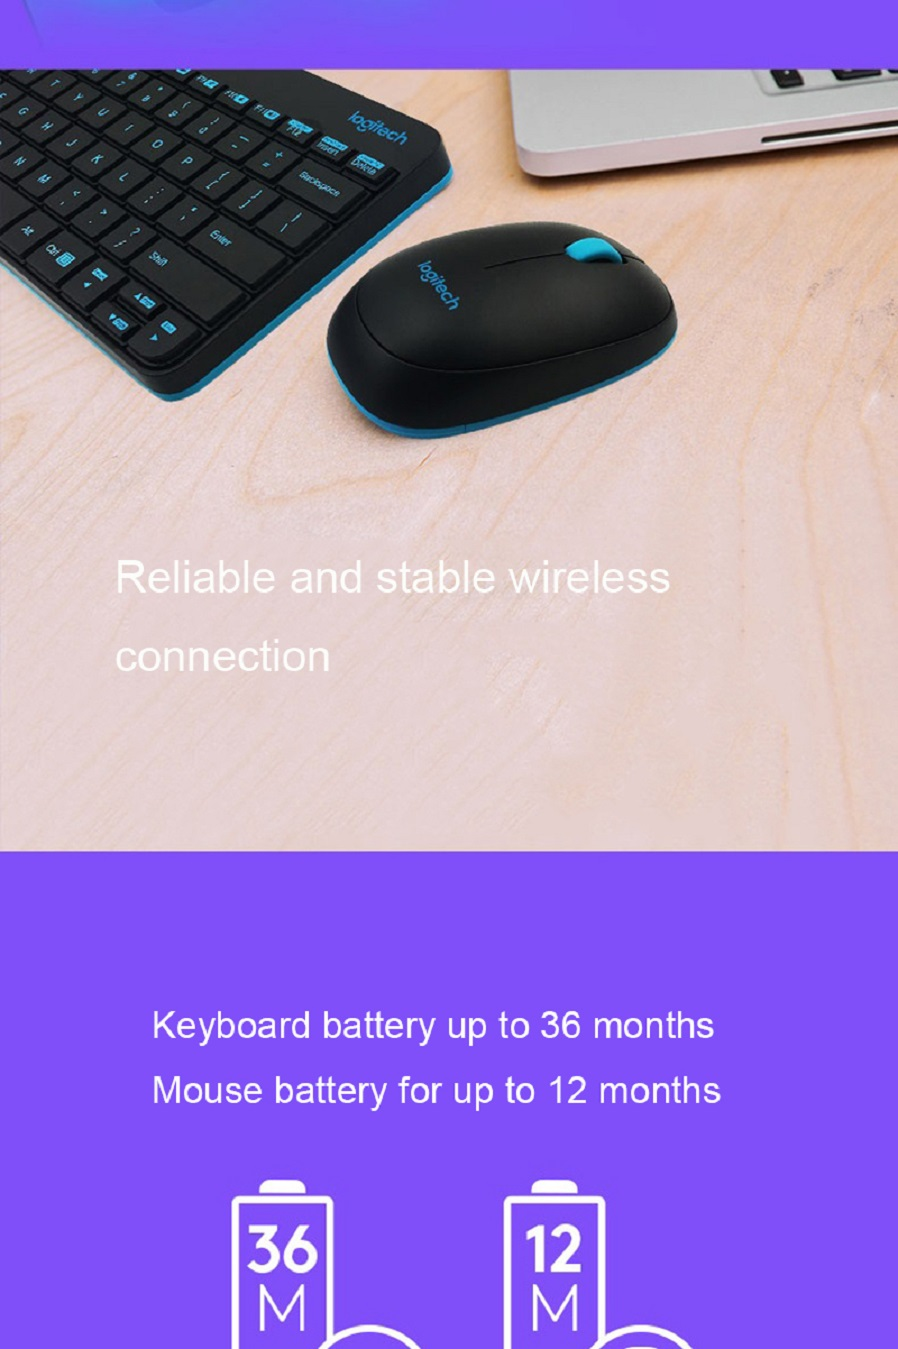 Logitech Mk245 Nano 79 Key Wireless Keyboard W 1000dpi Mouse Free And Combo Hk 3800 Veobecn